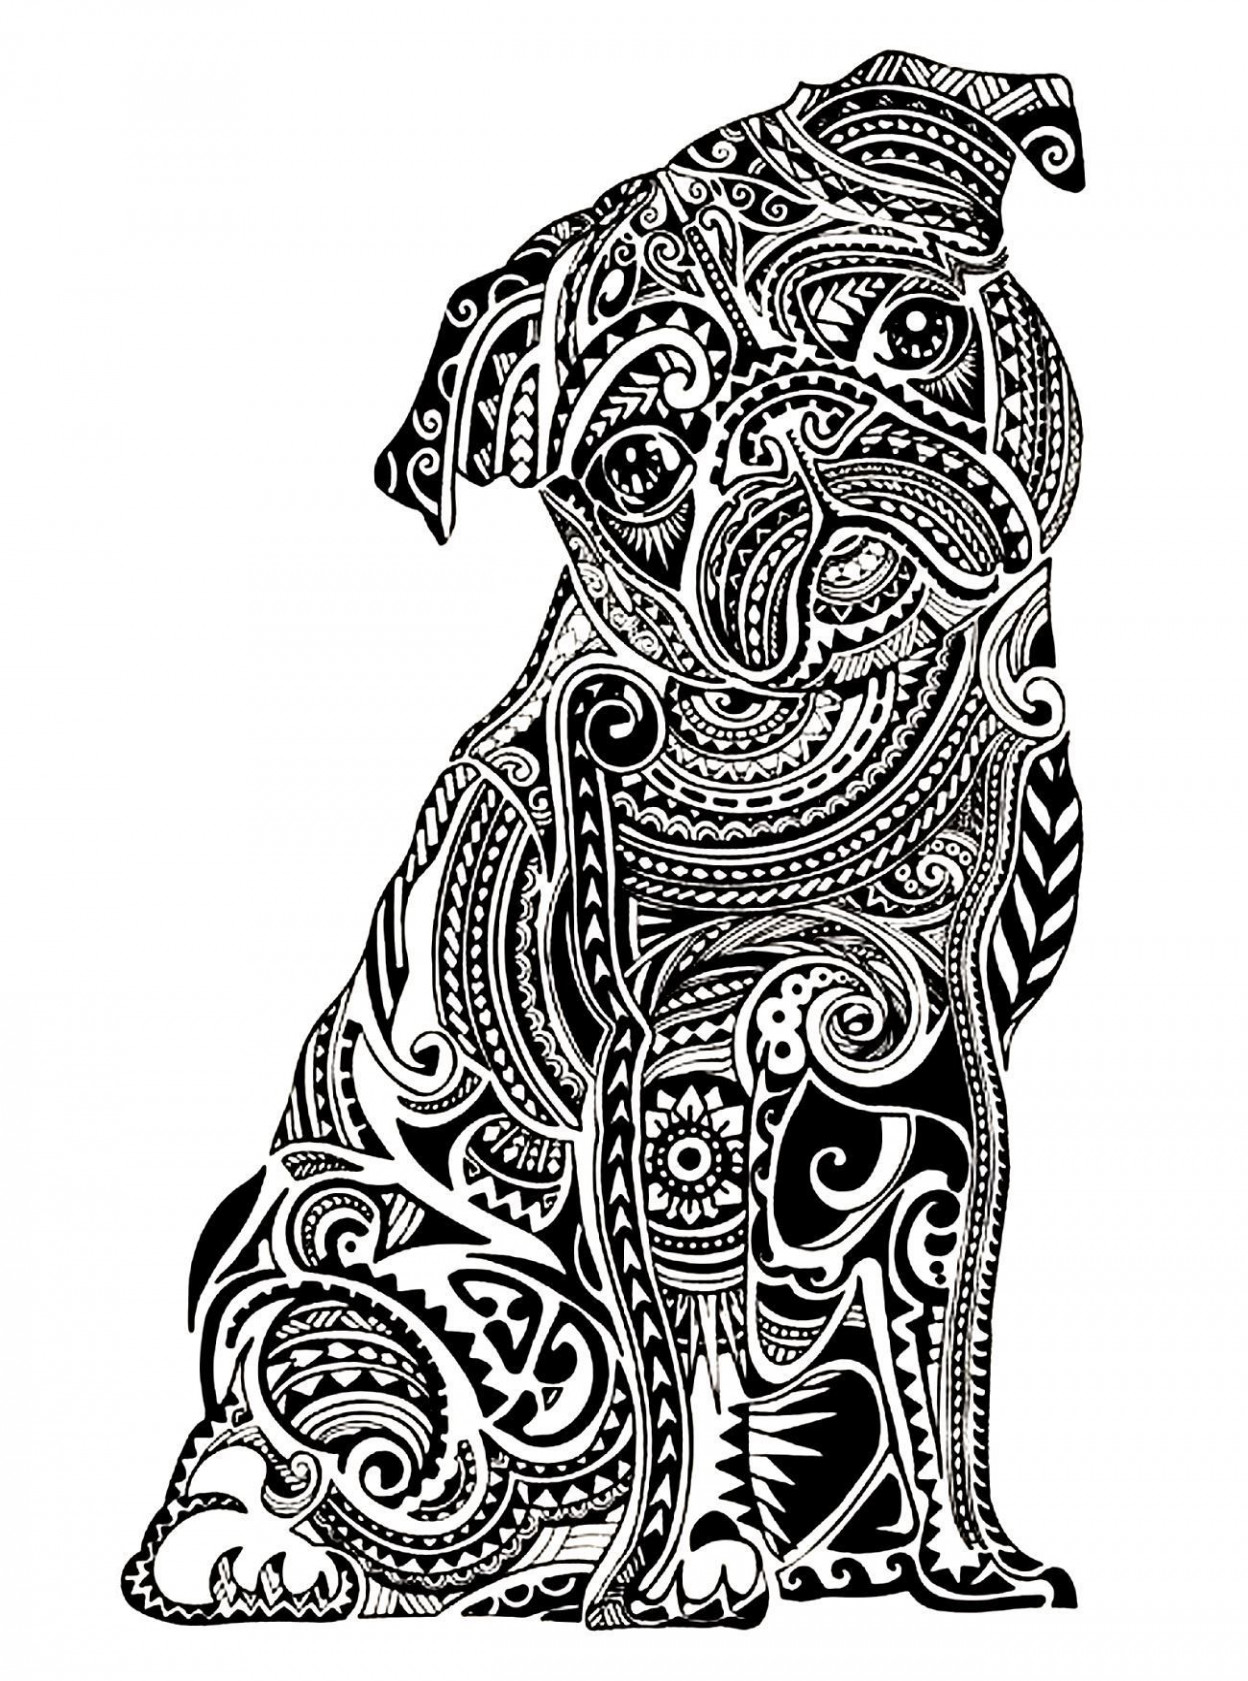 Pug Puppy Coloring Pages Pug Coloring Sheets Zentangle Pug Coloring Page For Adults Www